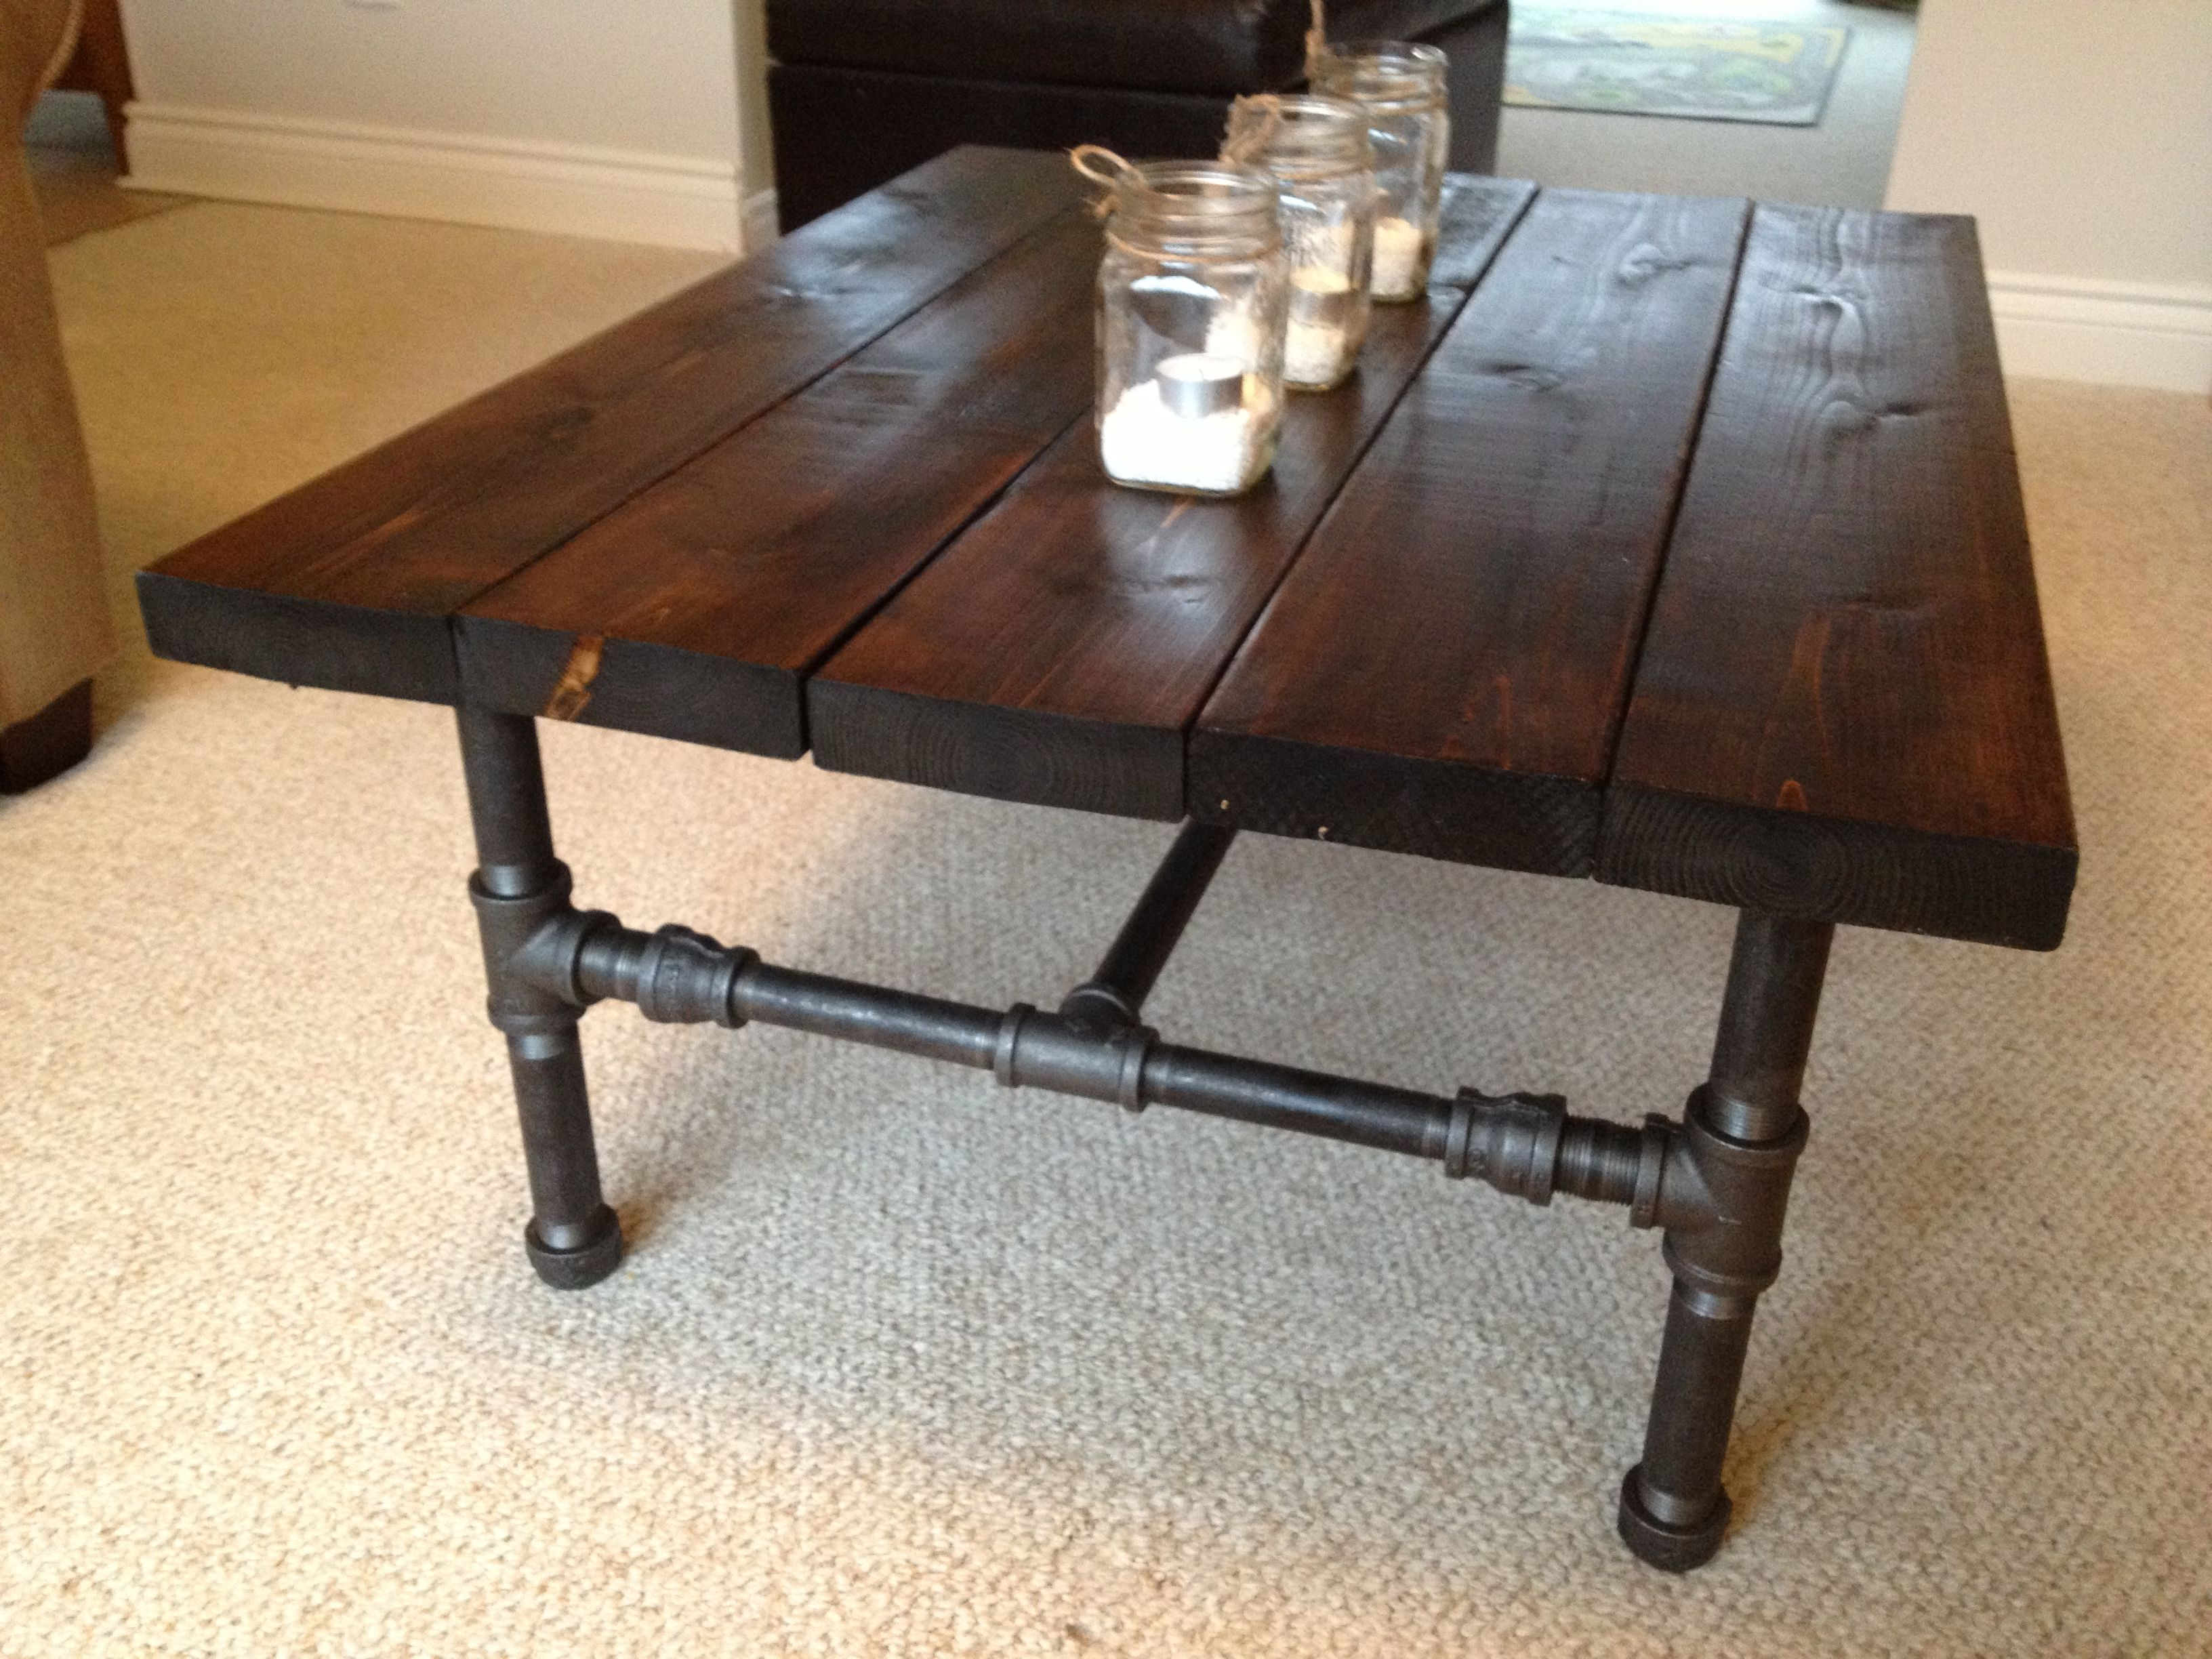 Homemade industrial pipe coffee table using 1